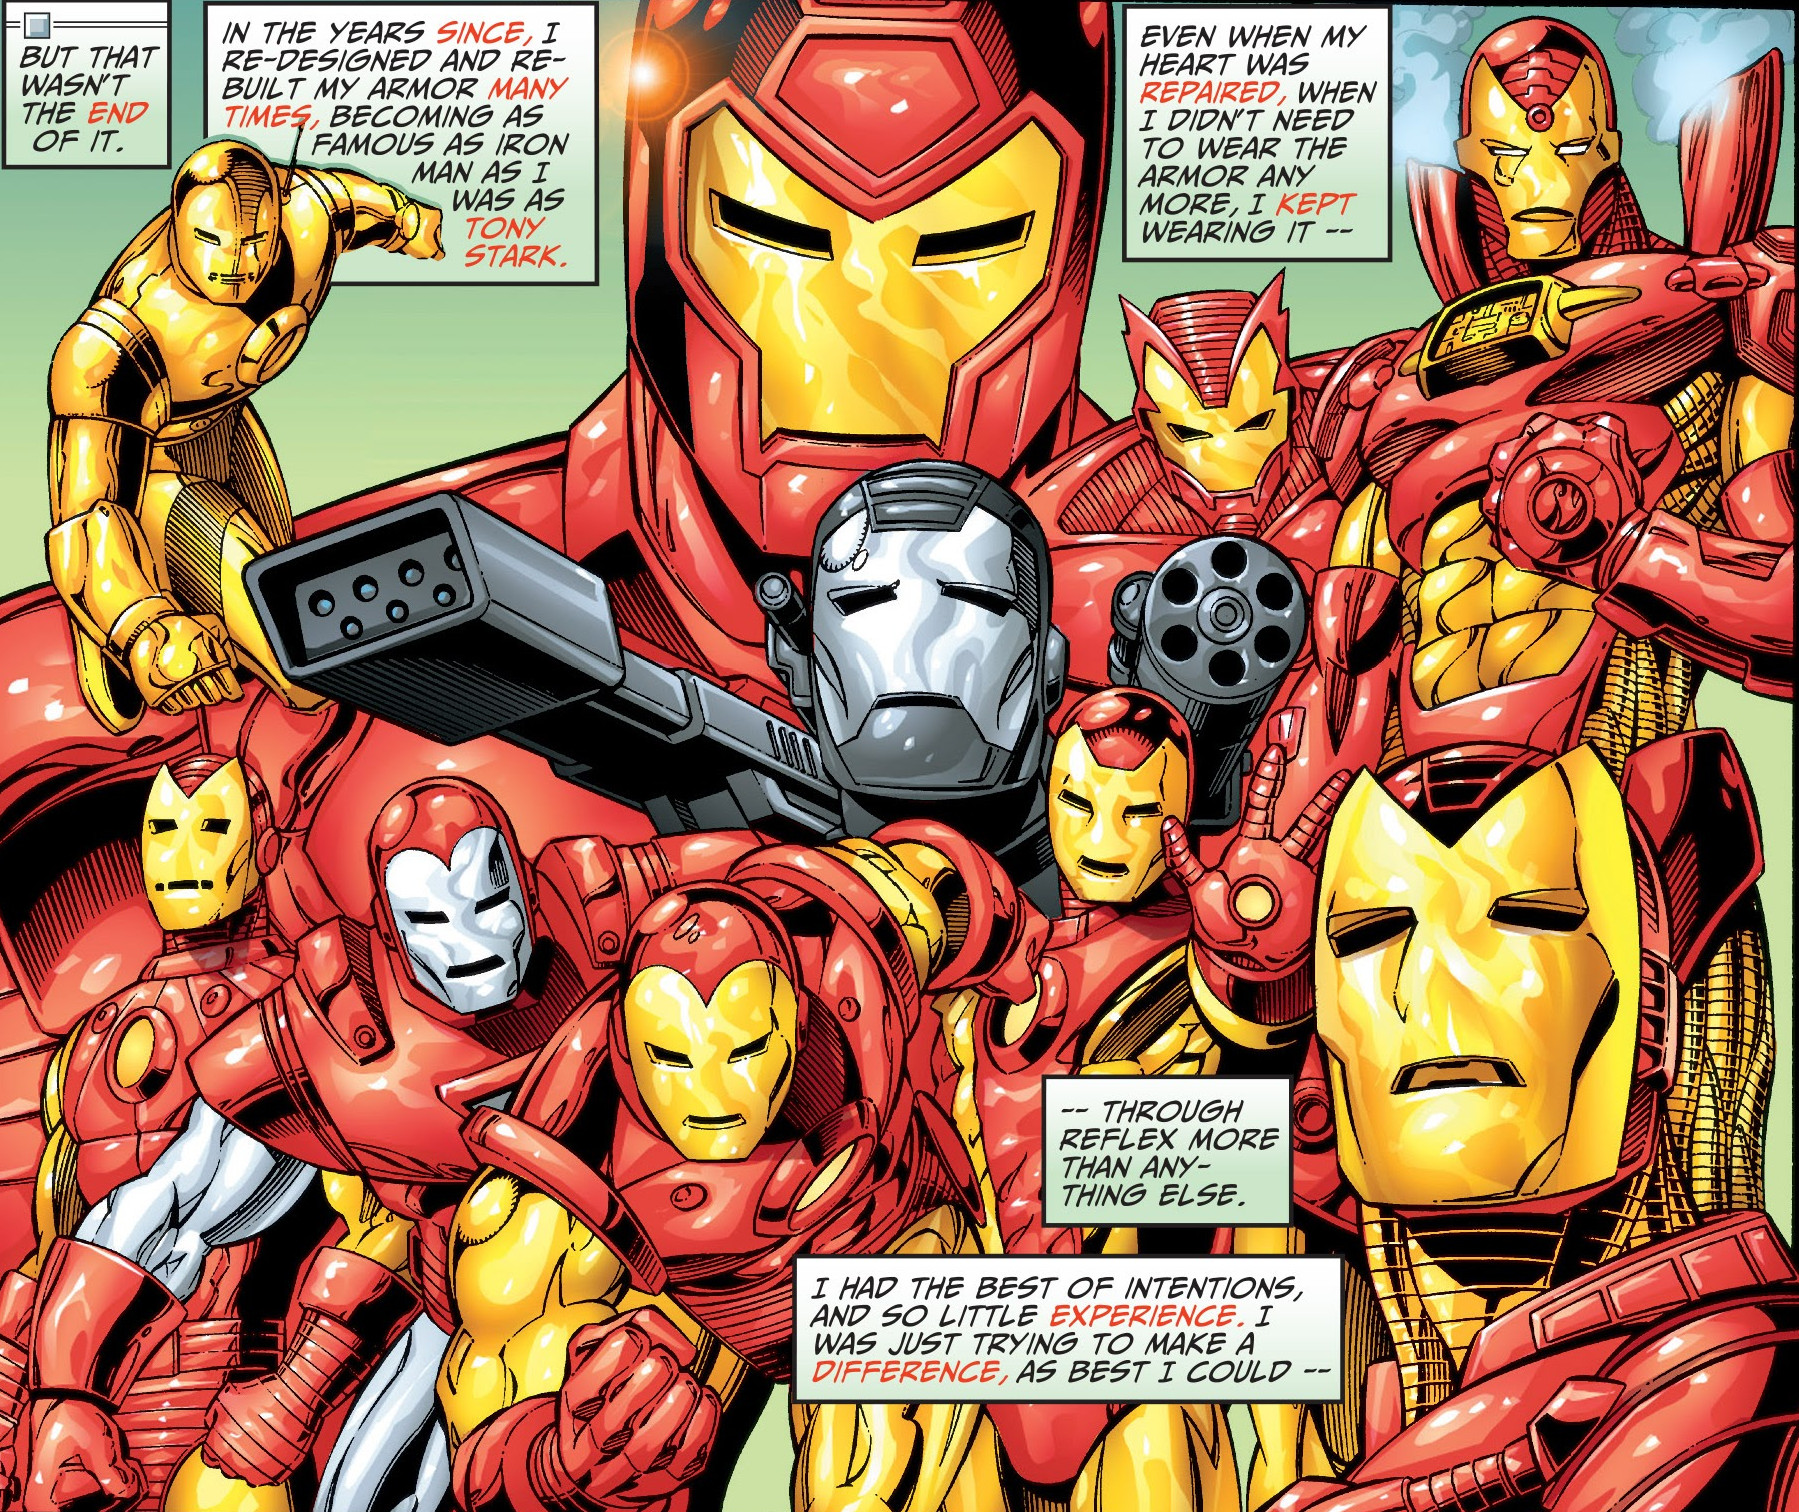 Iron Man Armor from Iron Man Vol 3 1 0001.jpg